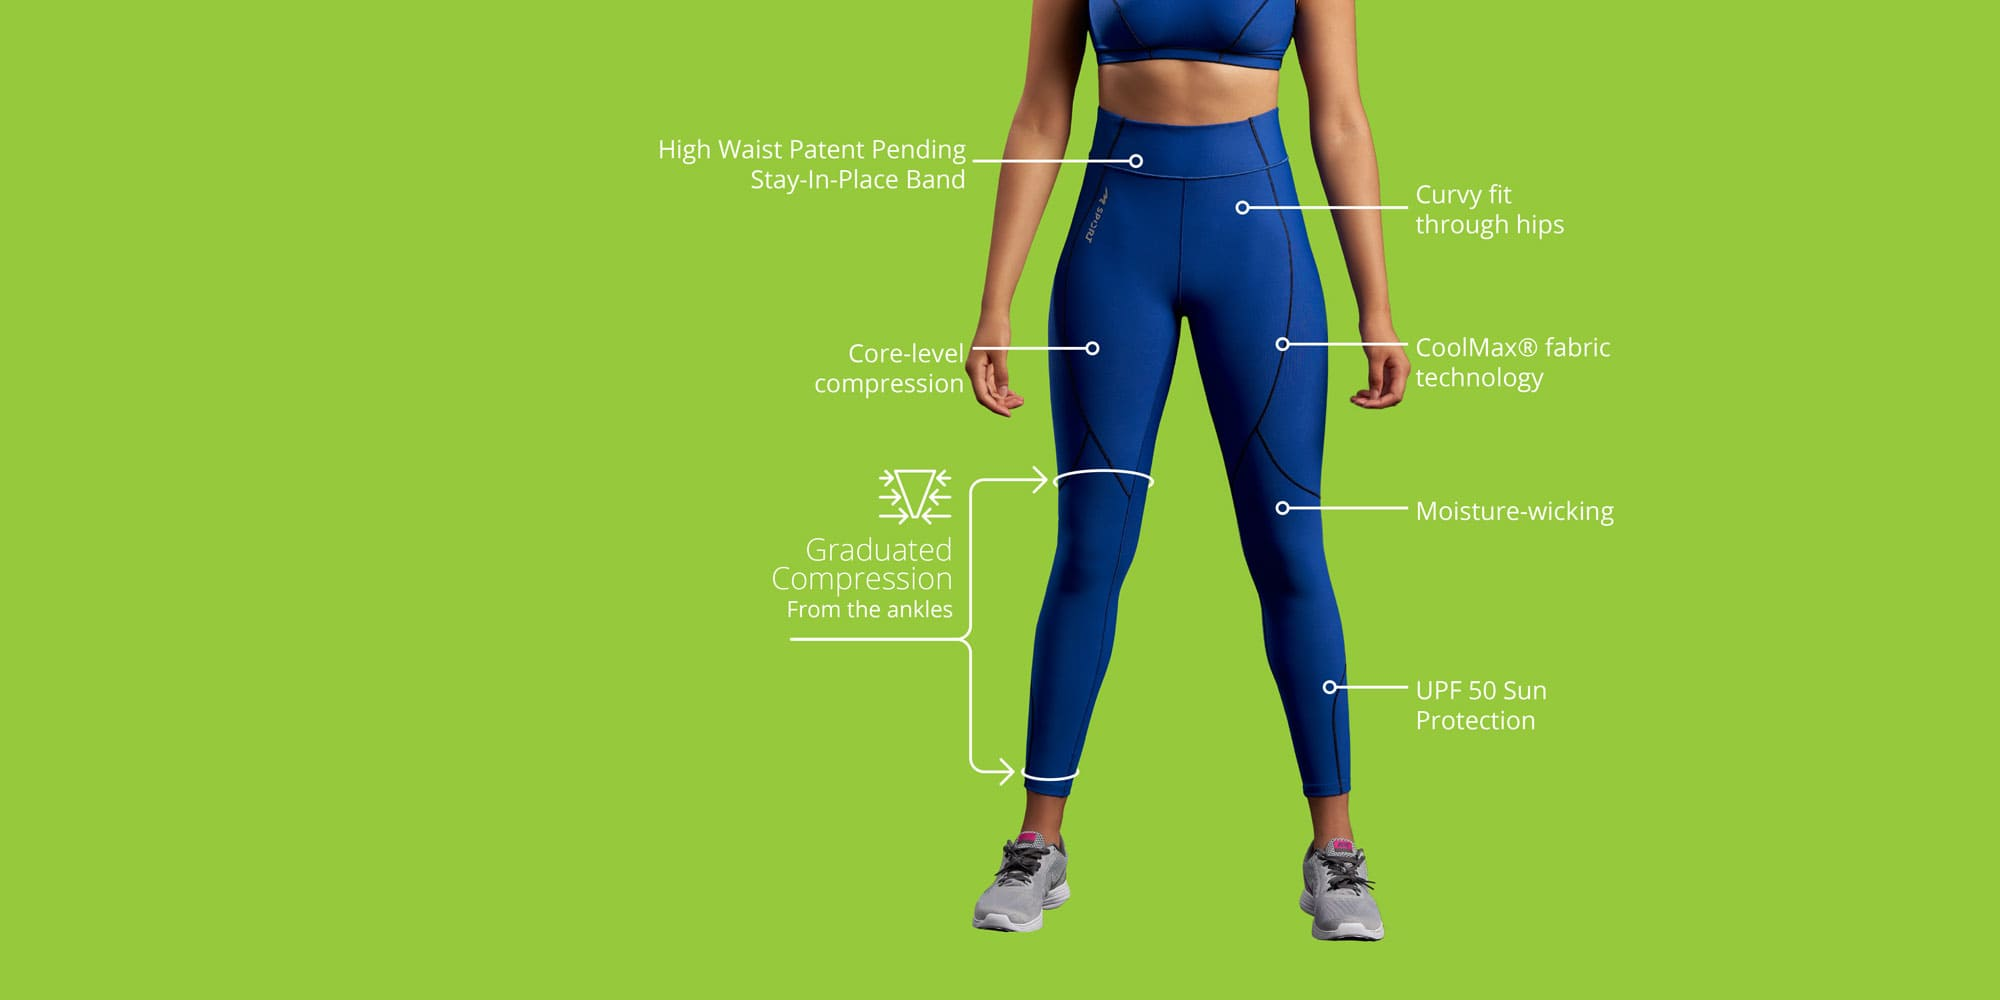 Women's Core: 15-20mmHG compression for everyday activities